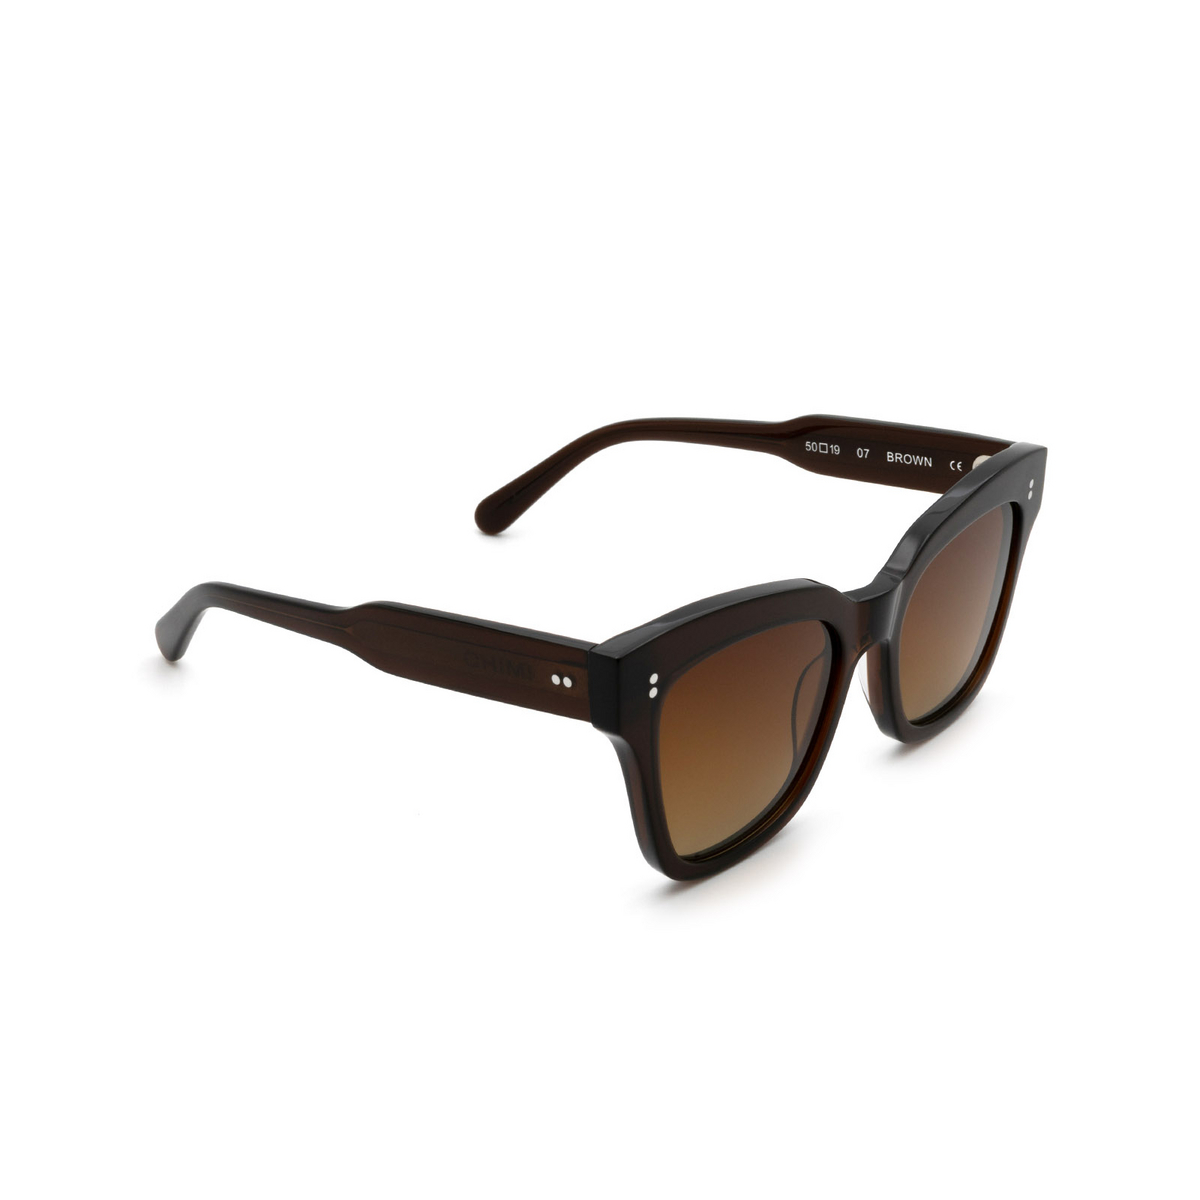 Chimi® Butterfly Sunglasses: 07 color Brown - three-quarters view.